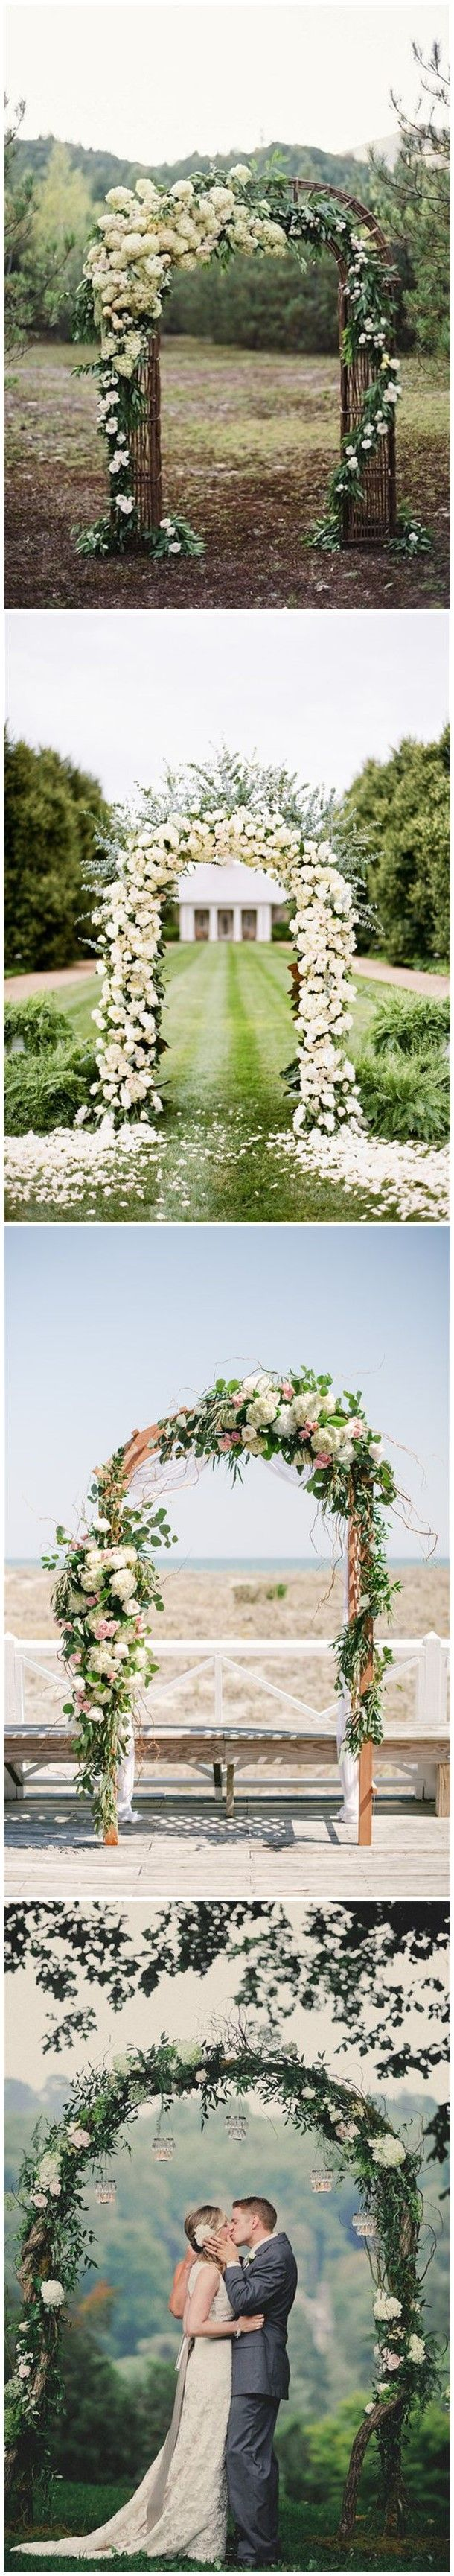 17 Best ideas about Wedding Arch Decorations on Pinterest